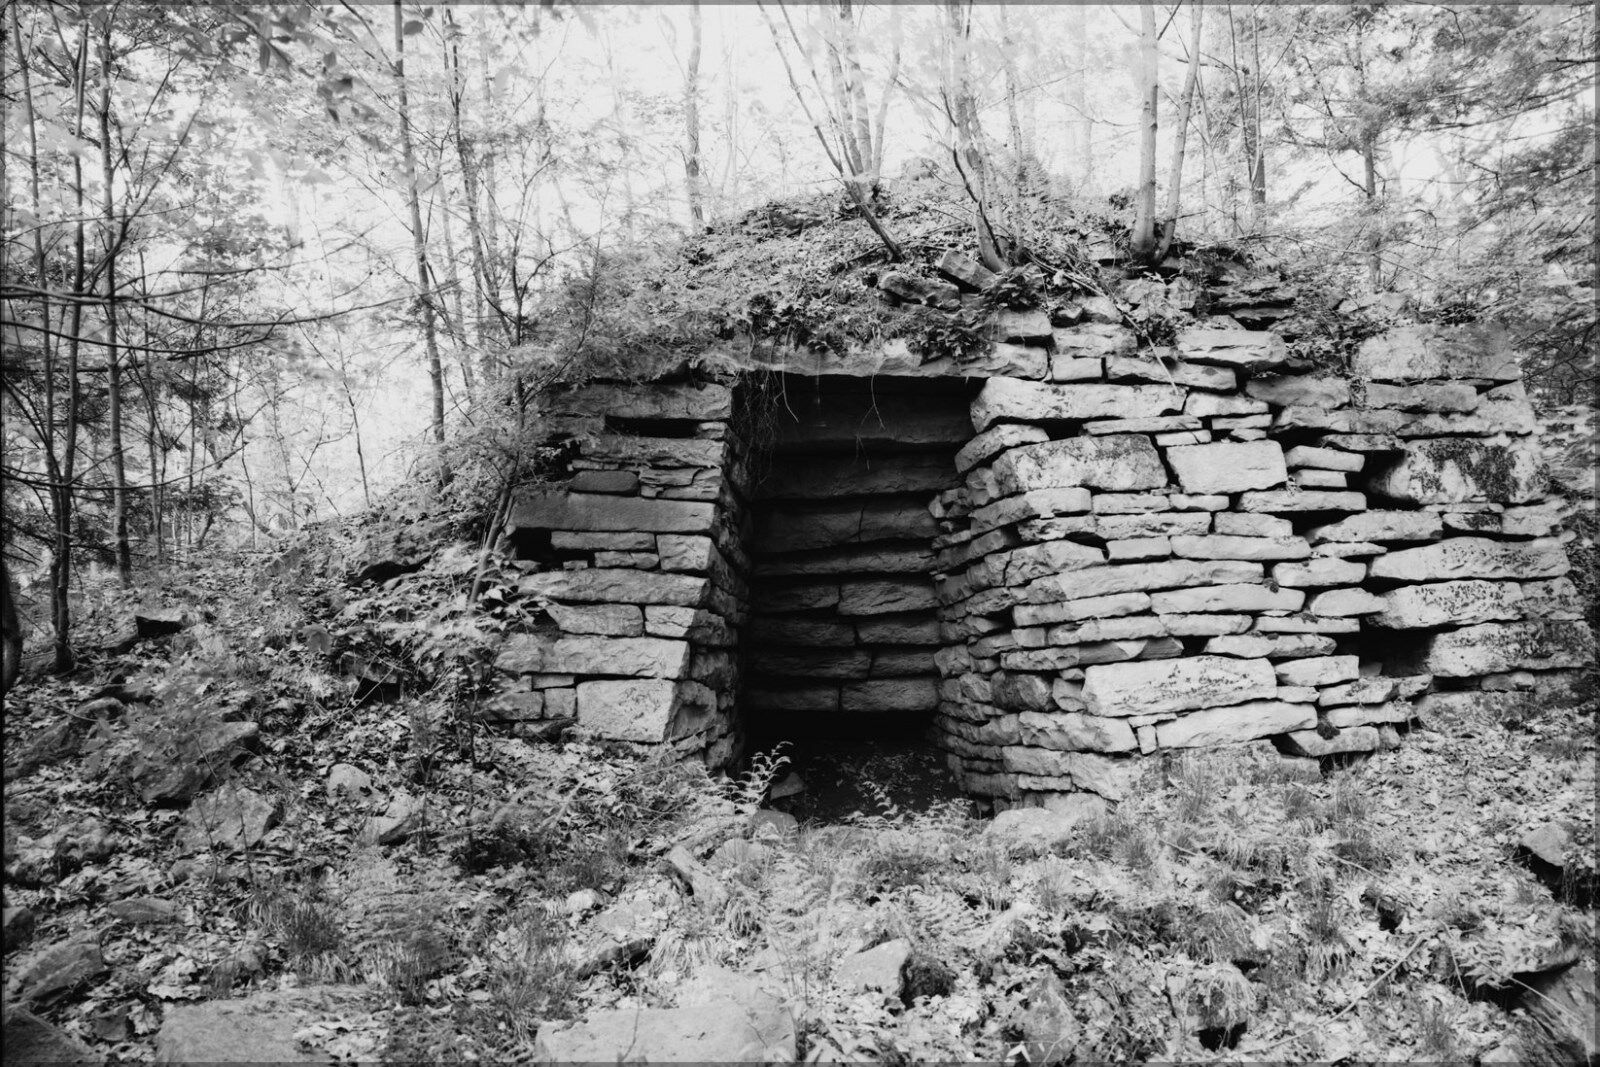 Poster, Many Größes; Shade Furnace, Located Along Dark Shade In Shade Township, S